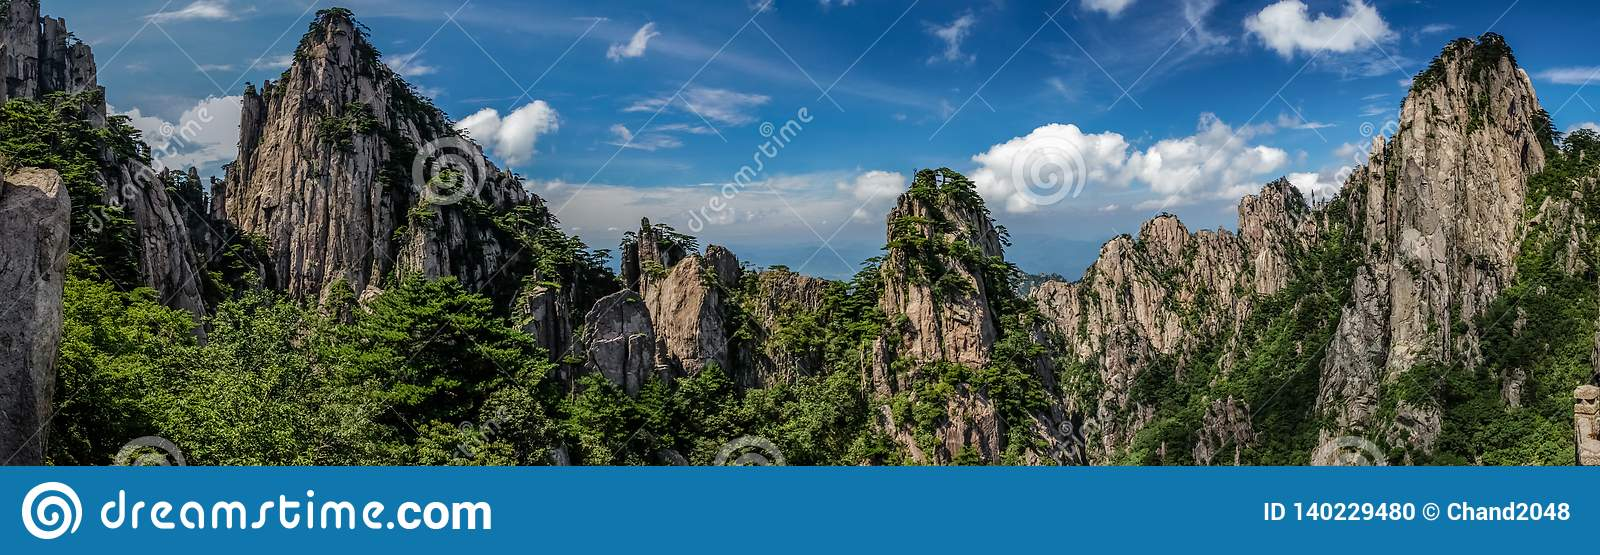 Panorama of rocky peaks and old pine trees cover the mountains under a bright blue sky with whispy clouds in Huangshan China